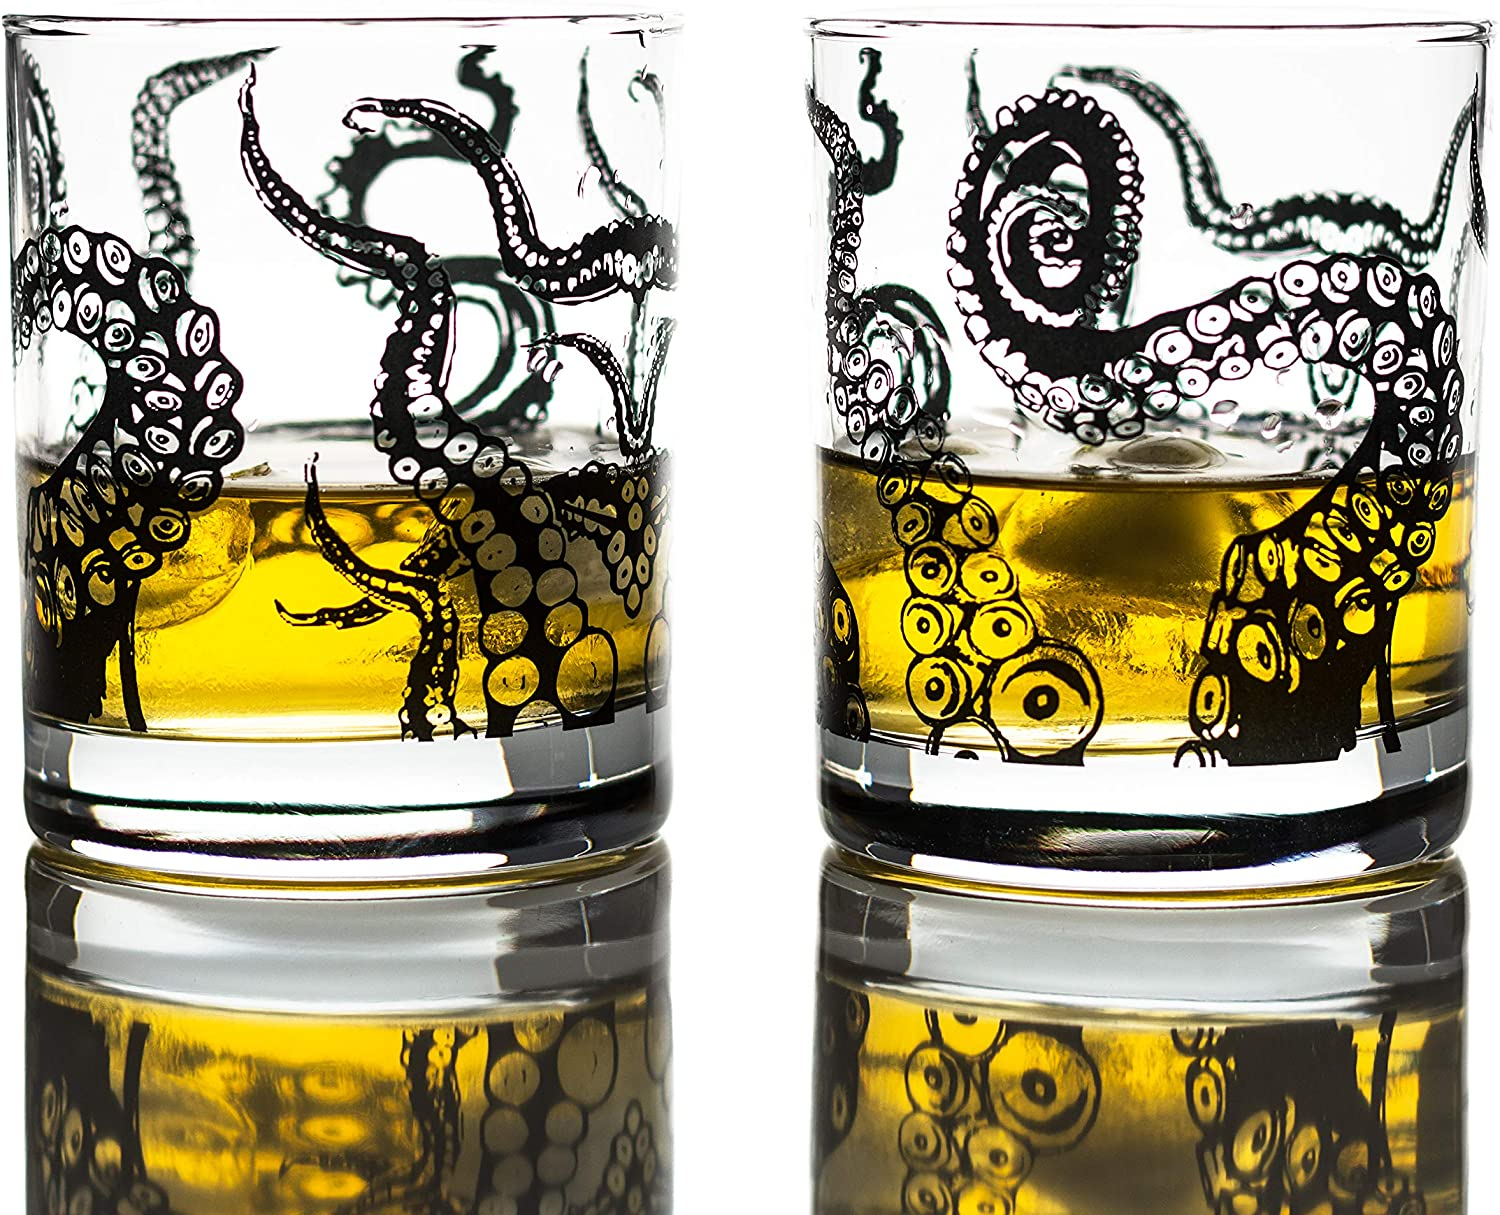 Greenline Goods Whiskey Glasses - 10 Oz Tumbler Gift Set – Kraken Whiskey Glasses (Set of 2) | Rocks Glass Octopus Decor | Old Fashioned Rocks Glasses